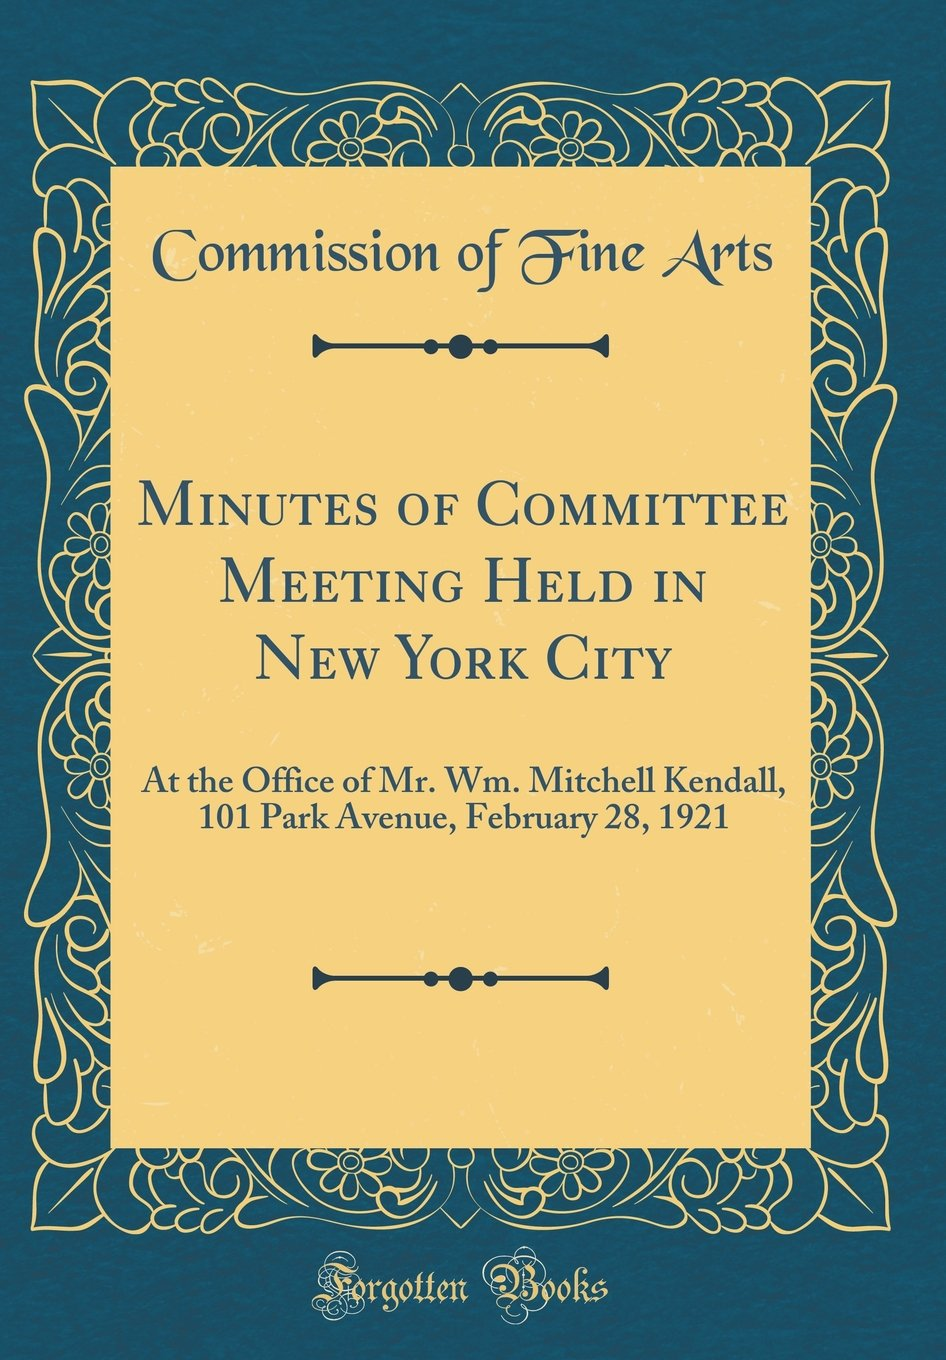 Download Minutes of Committee Meeting Held in New York City: At the Office of Mr. Wm. Mitchell Kendall, 101 Park Avenue, February 28, 1921 (Classic Reprint) ePub fb2 book